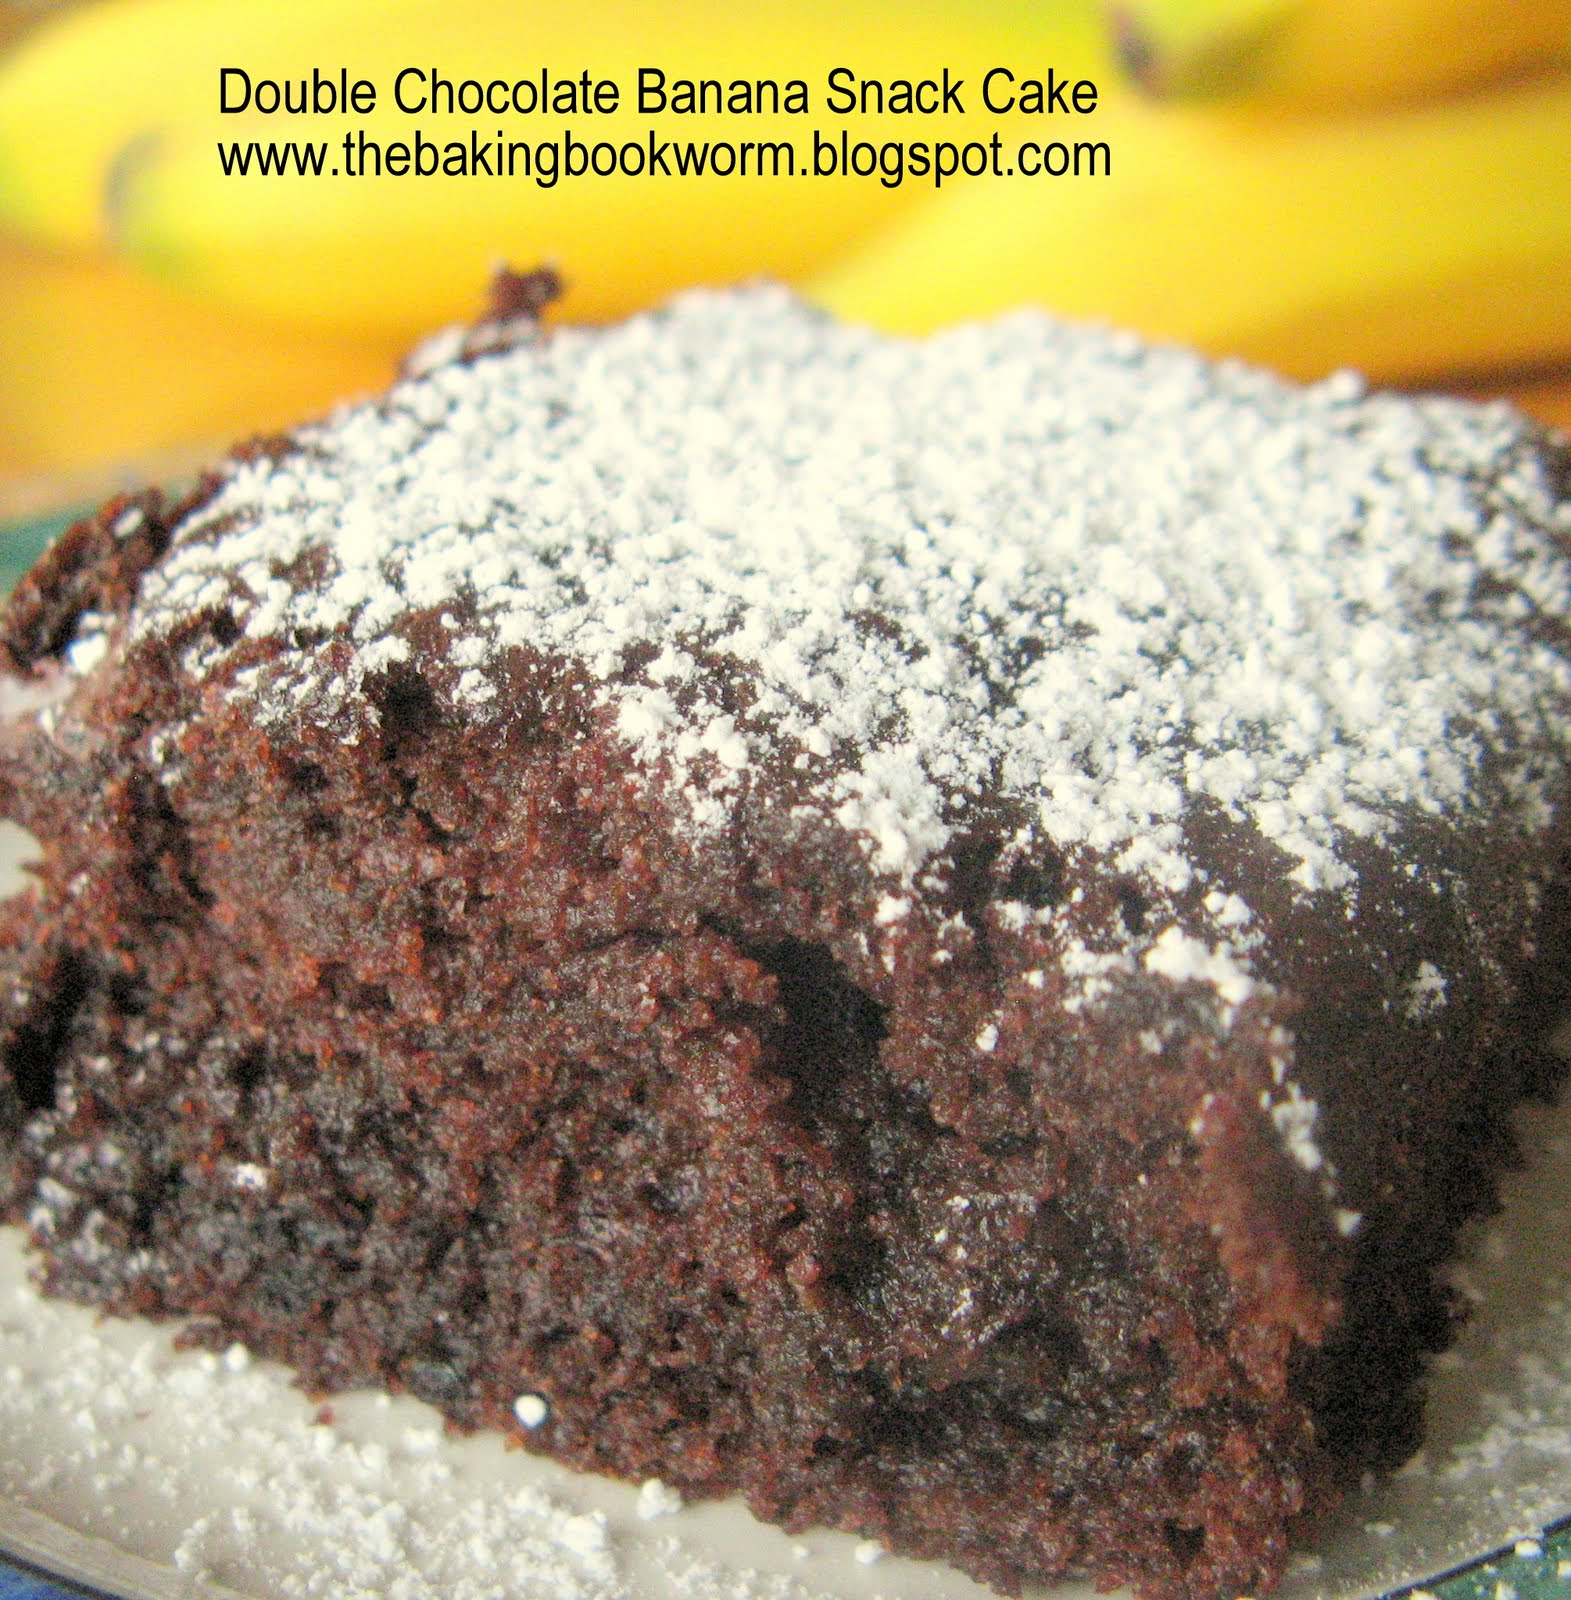 The Baking Bookworm: Double Chocolate Banana Snack Cake